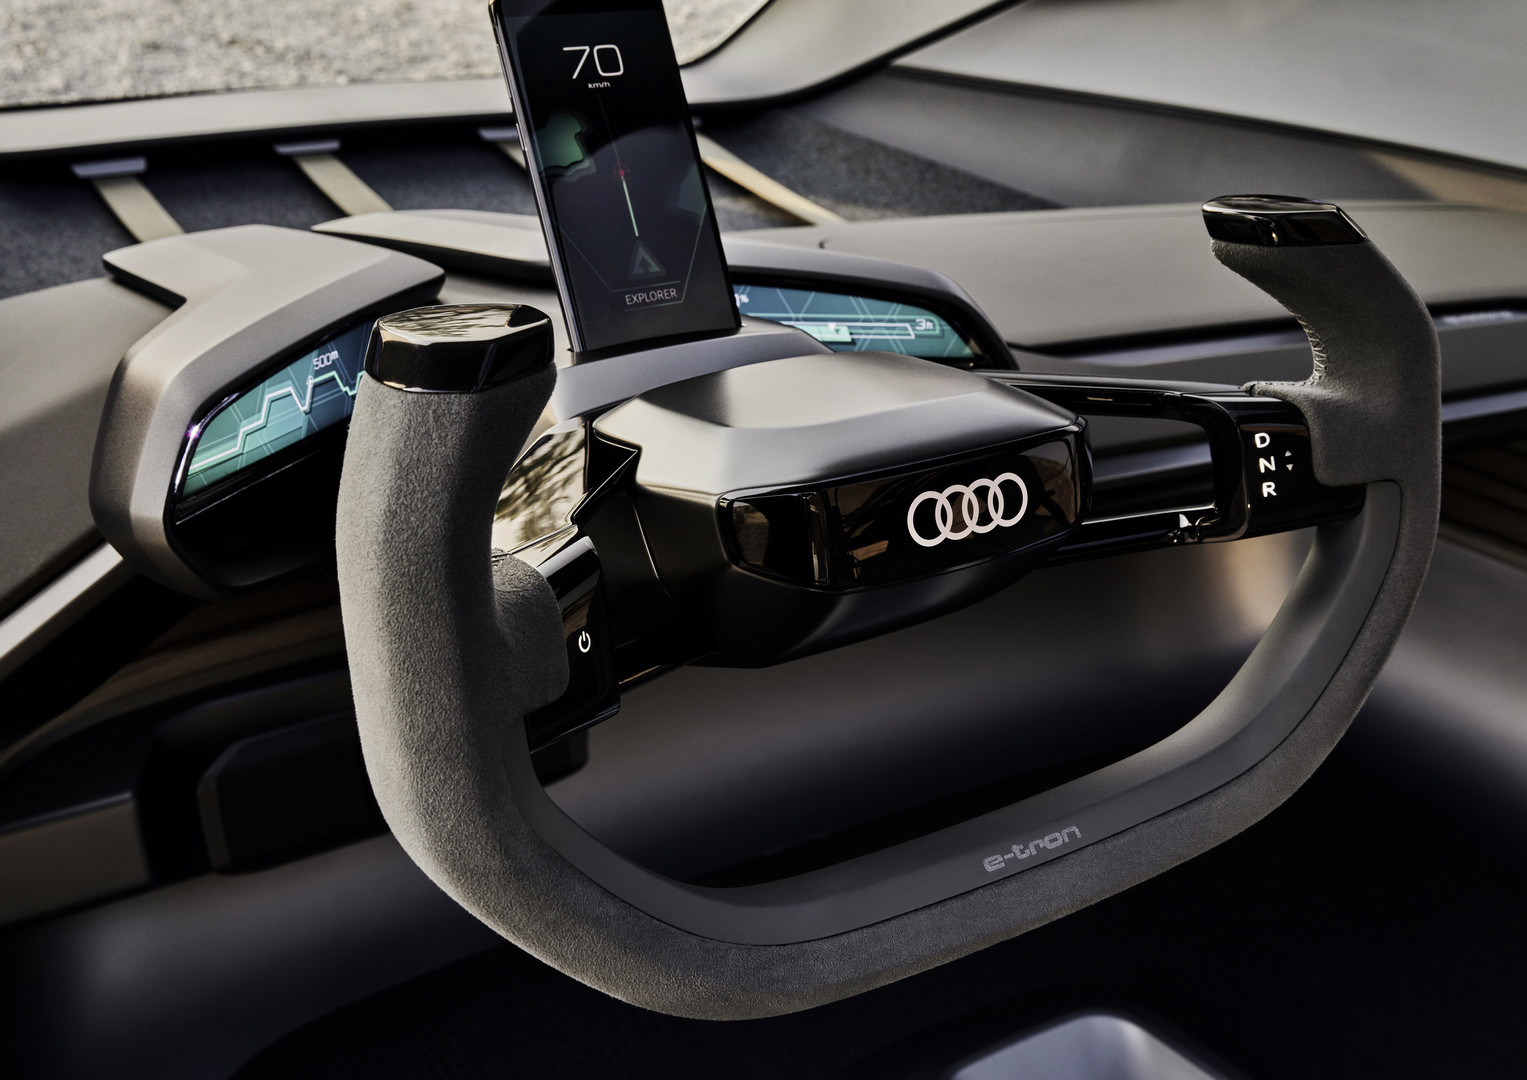 Audi AI:TRAIL quattro Steering Wheel